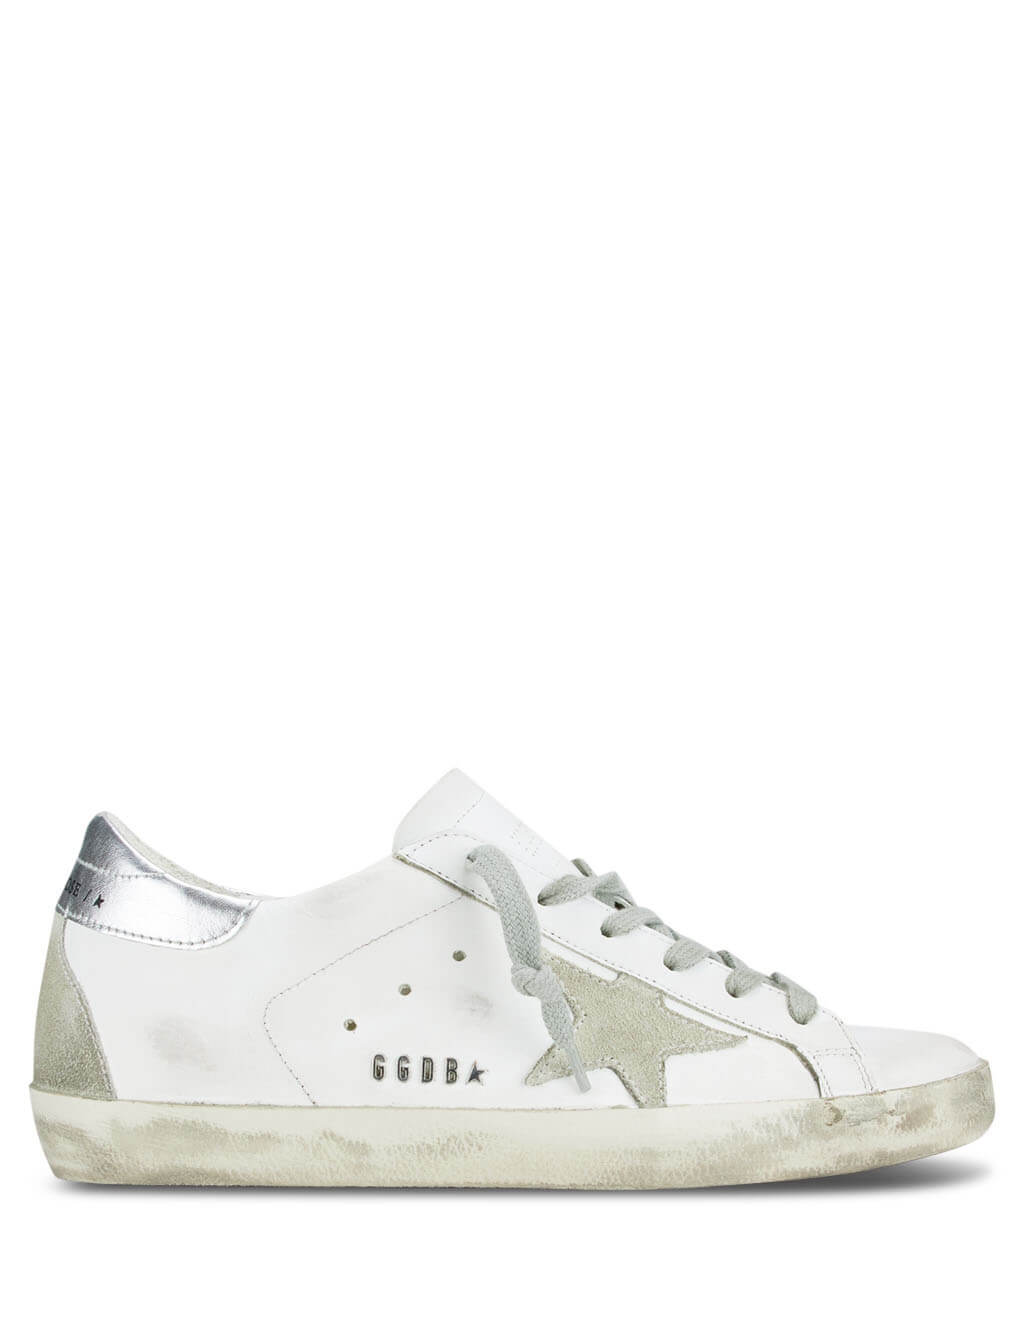 Women's White and Silver Golden Goose Superstar Sneakers GCOWS590.W77